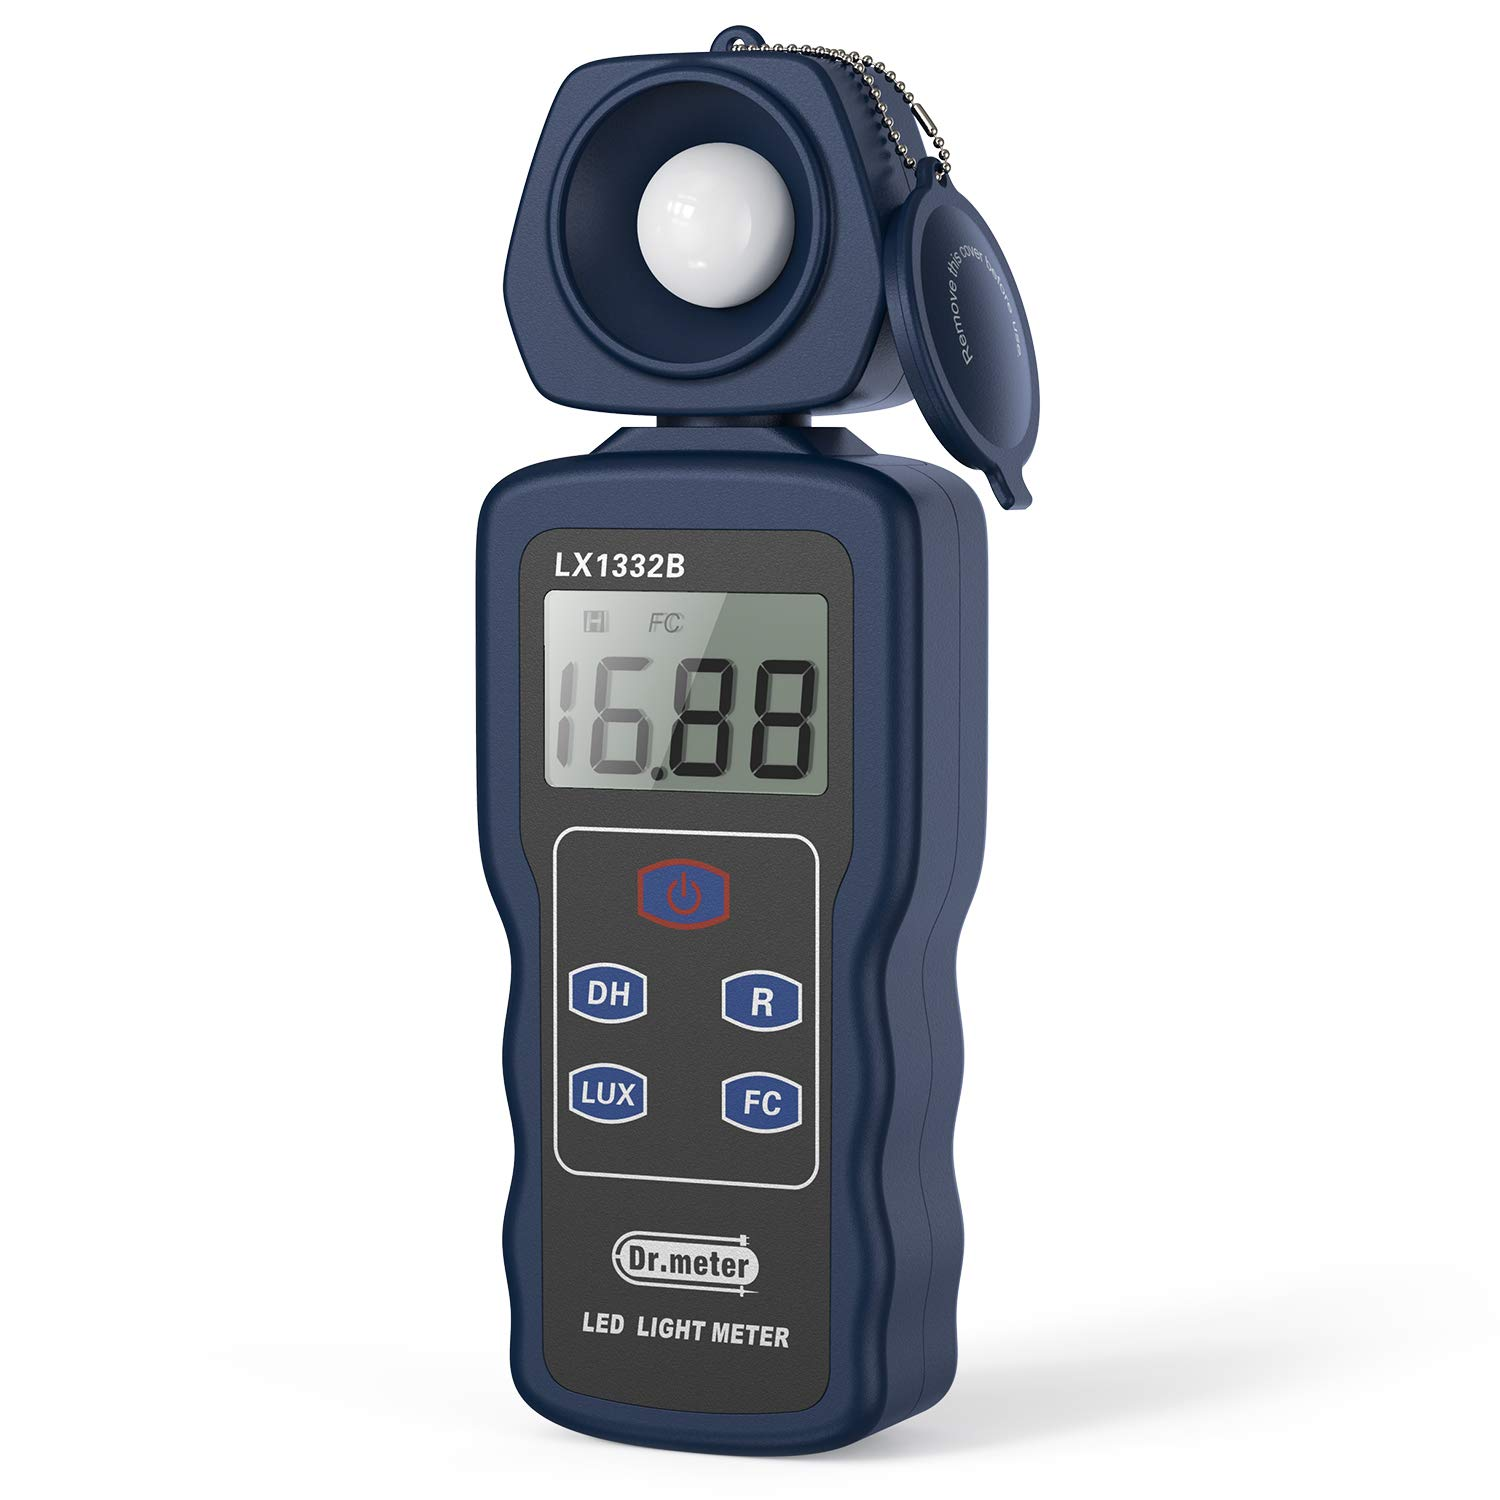 Professional LED Light Meter, Dr.meter 1332B Digital Illuminance/Light Meter with 0-200,000 Measuring Ranges and 270 Degree Rotatable Detector